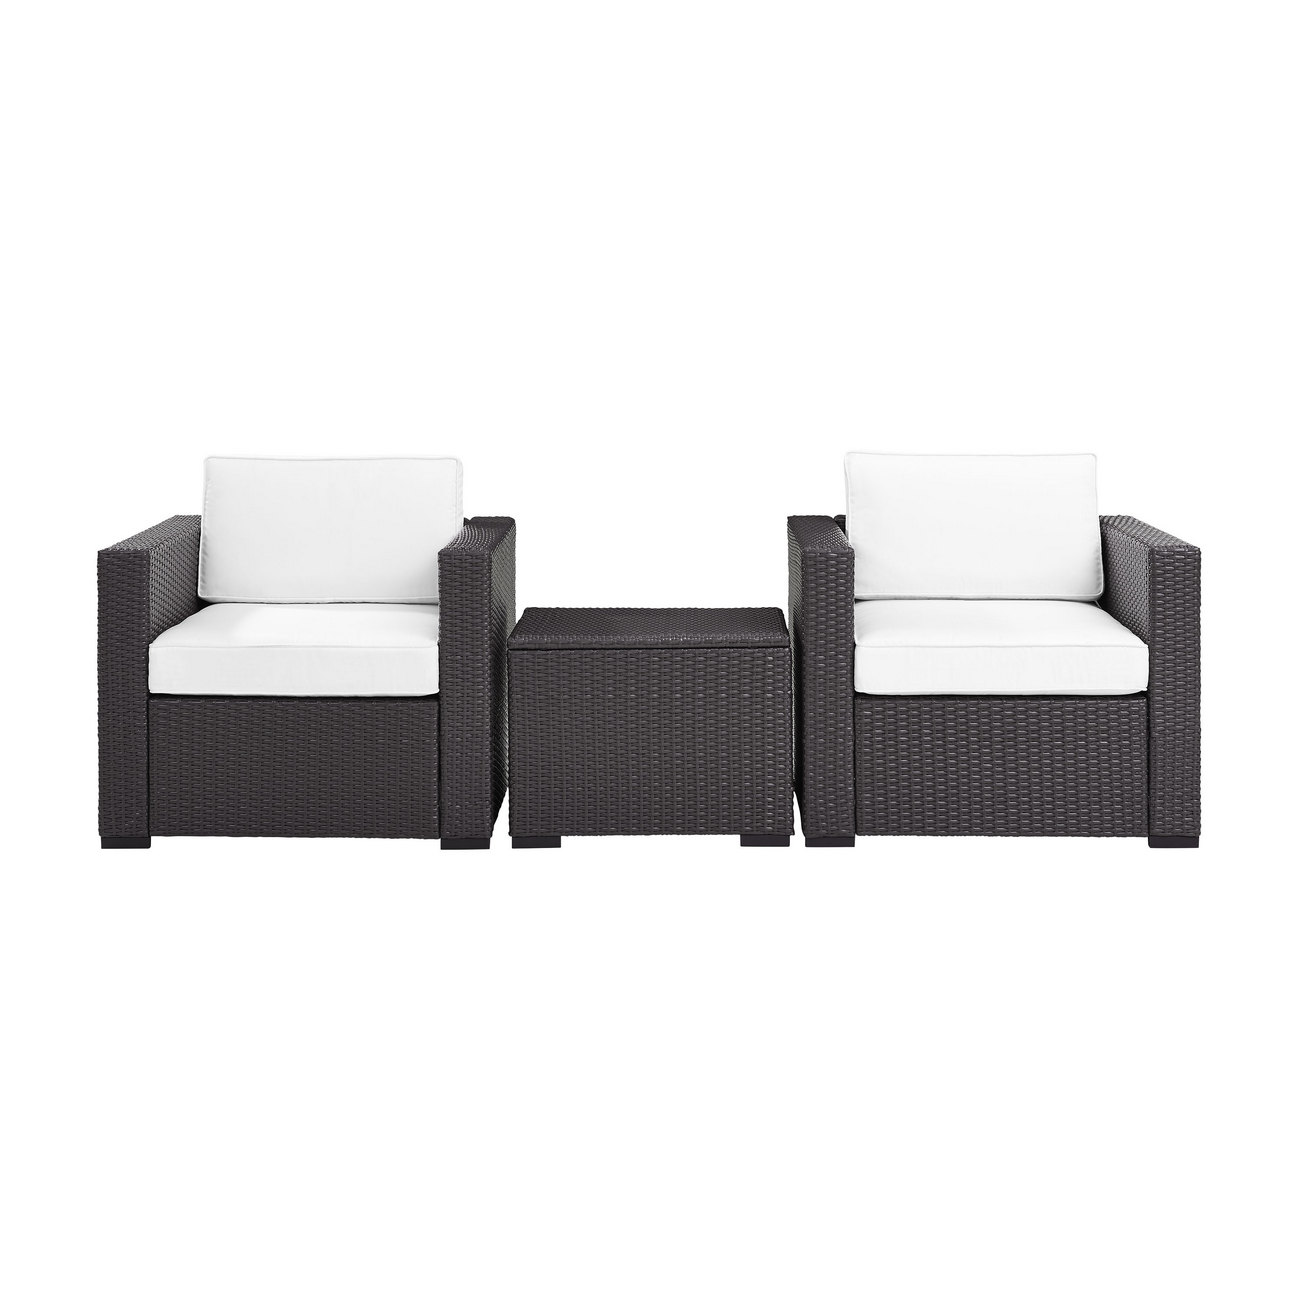 Biscayne 2 Person Outdoor Wicker Seating Set in White - Two Outdoor Wicker Chairs & Coffee Table - Crosley KO70104BR-WH